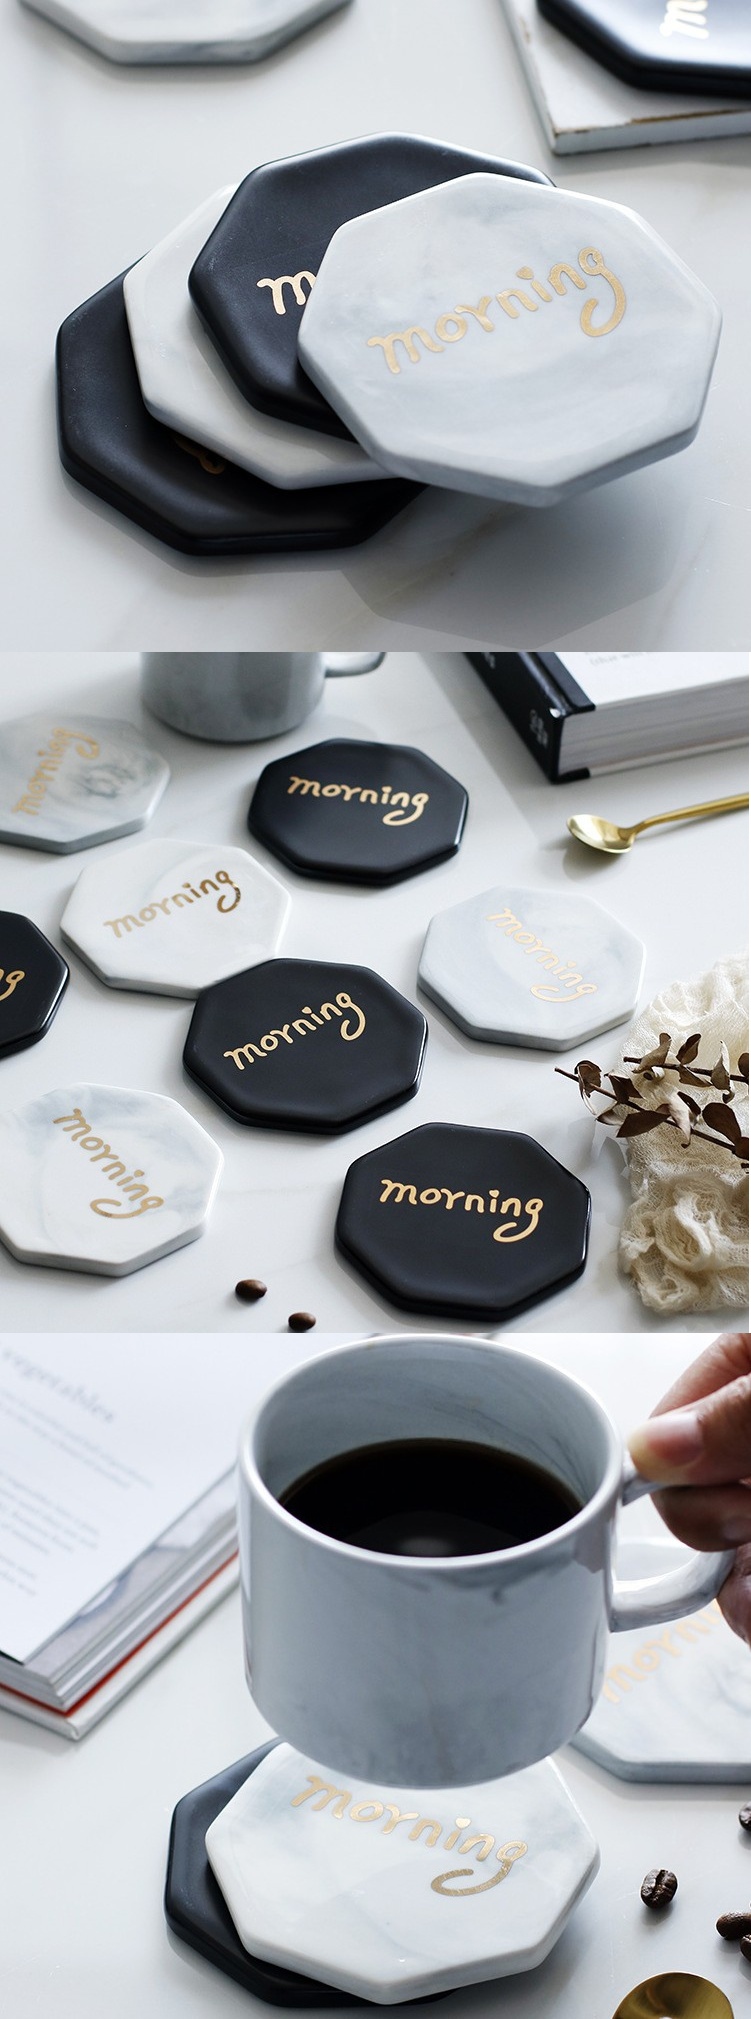 Nordic zakka wind European top - grade ceramic throwing gold cup mat creative hot insulation pad household cup cup mat